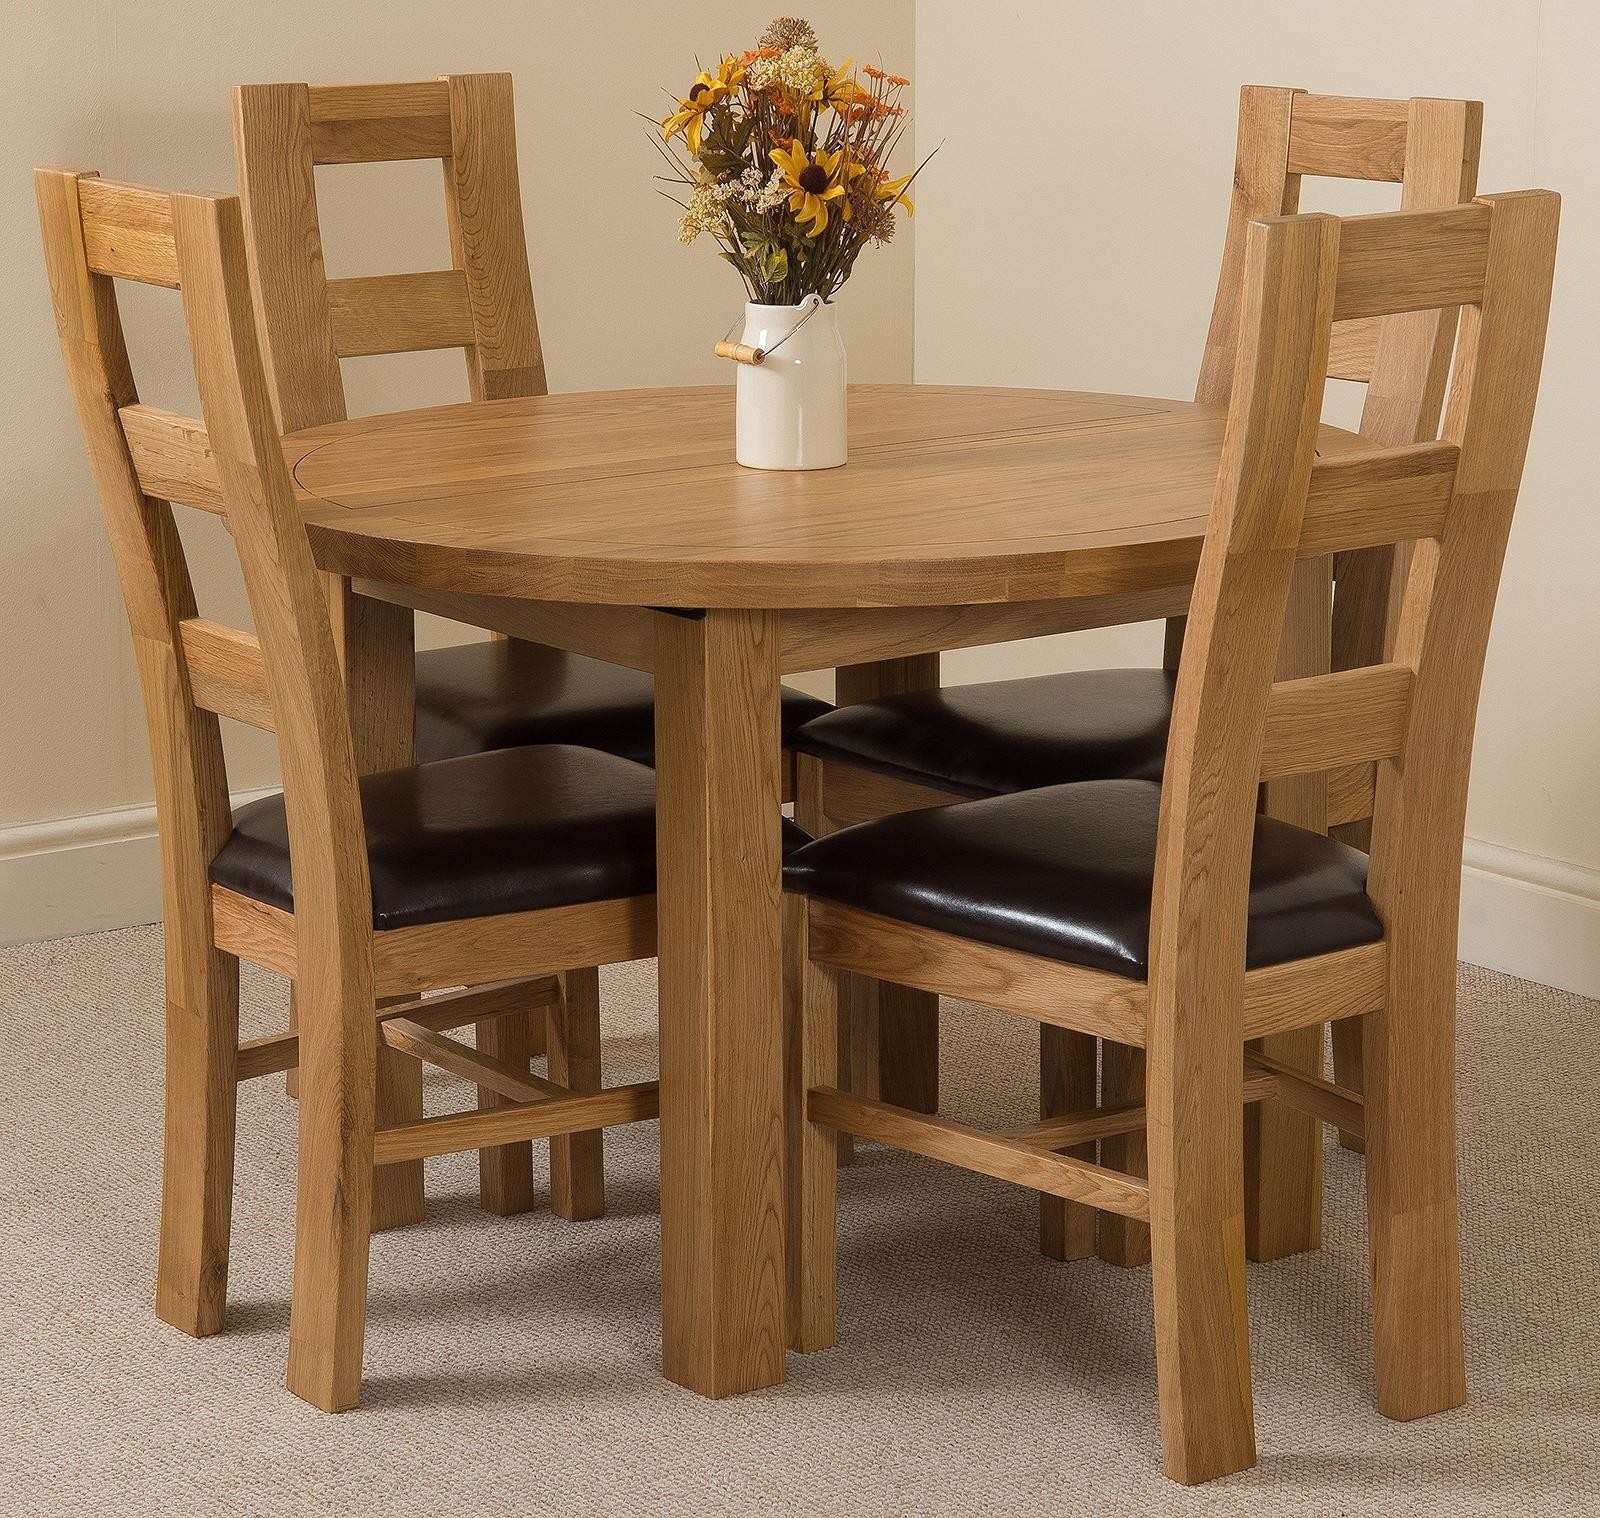 Edmonton Solid Oak Extending Oval Dining Table With 4 Yale Throughout Most Recently Released Adejah 35'' Dining Tables (View 10 of 15)